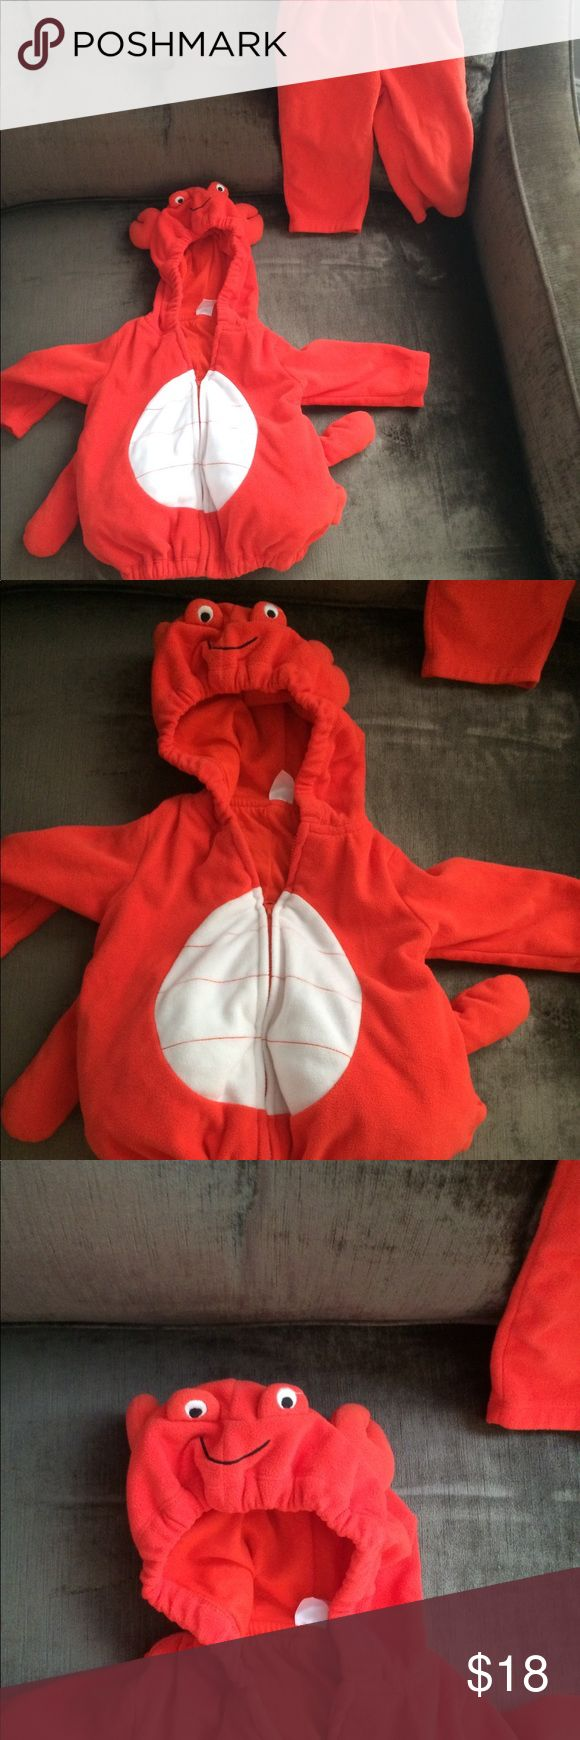 Baby lobster costume Very soft warm lobster costume Carter's Costumes Halloween